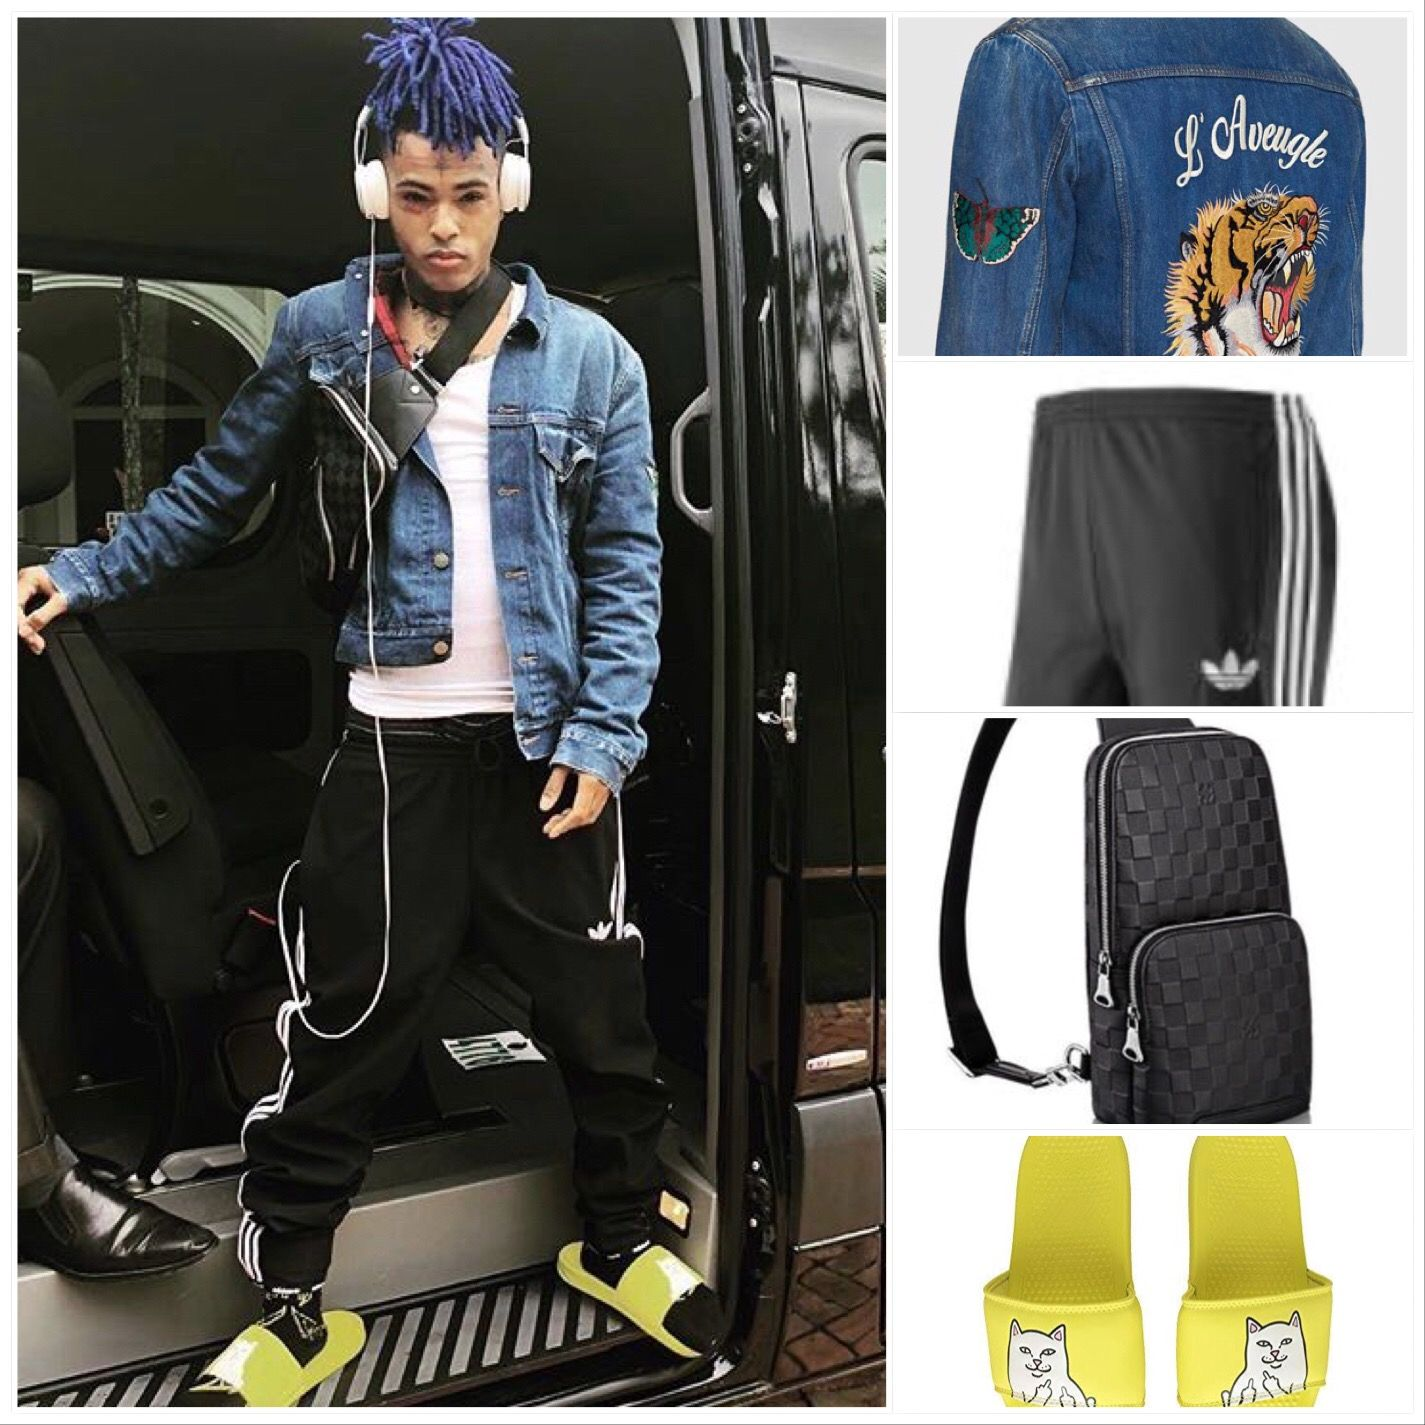 spelloutdye • Instagram photos and videos  Rapper outfits